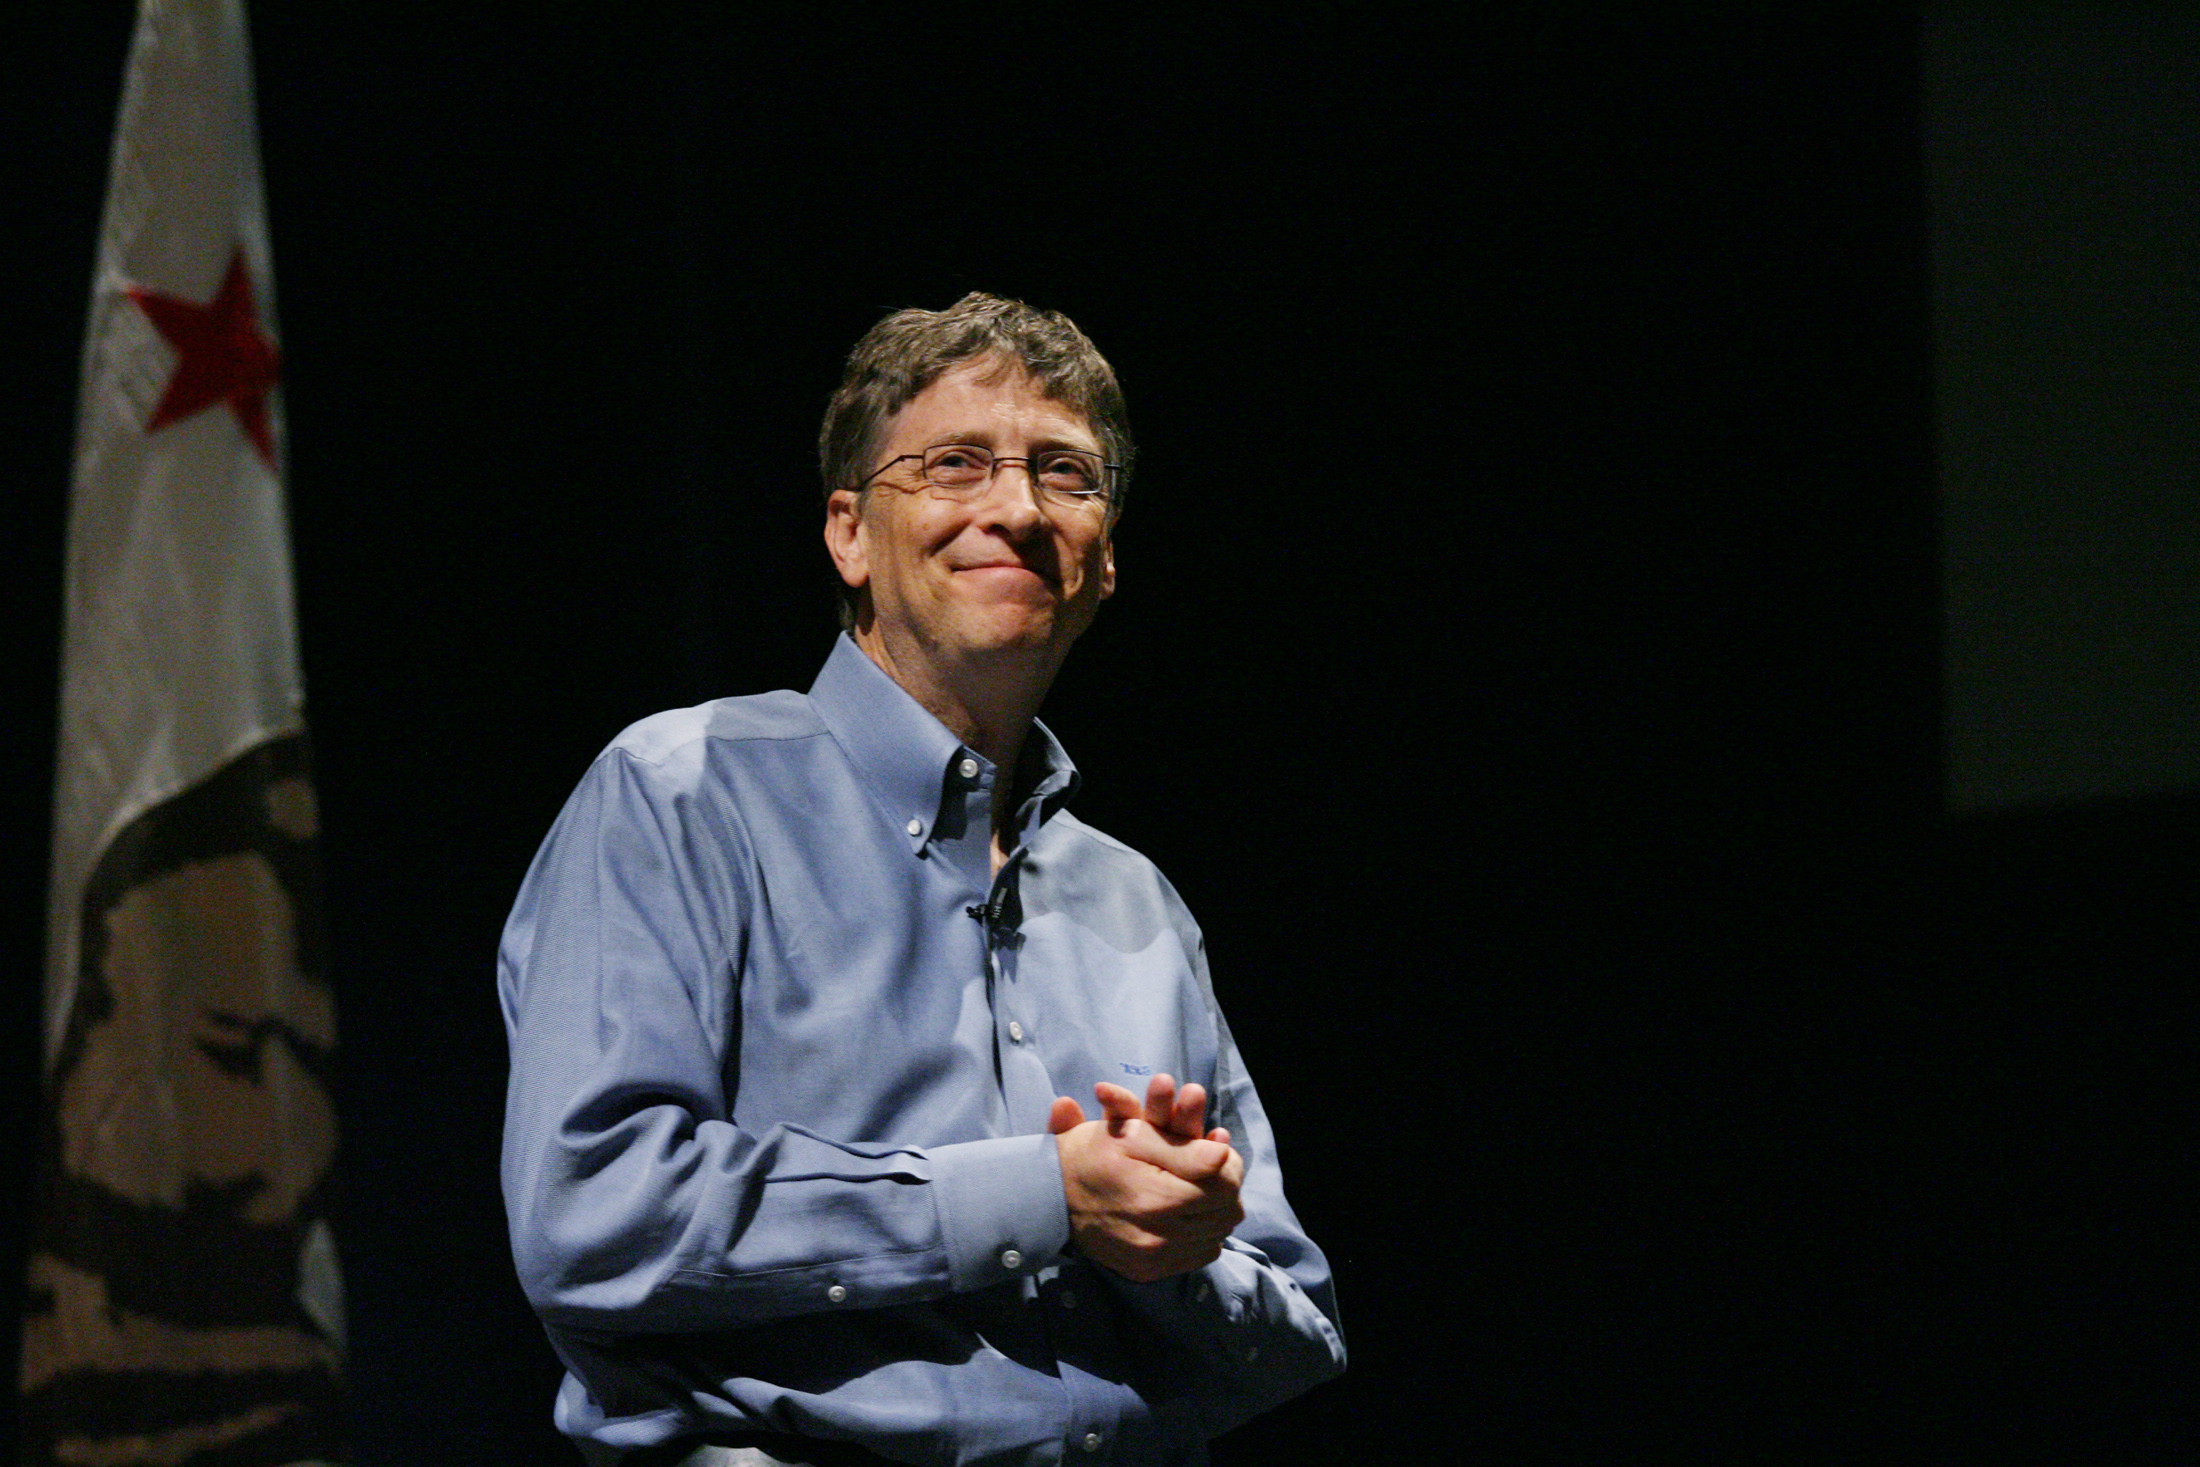 Microsoft Chairman Bill Gates introduces Microsoft DreamSpark at Stanford University